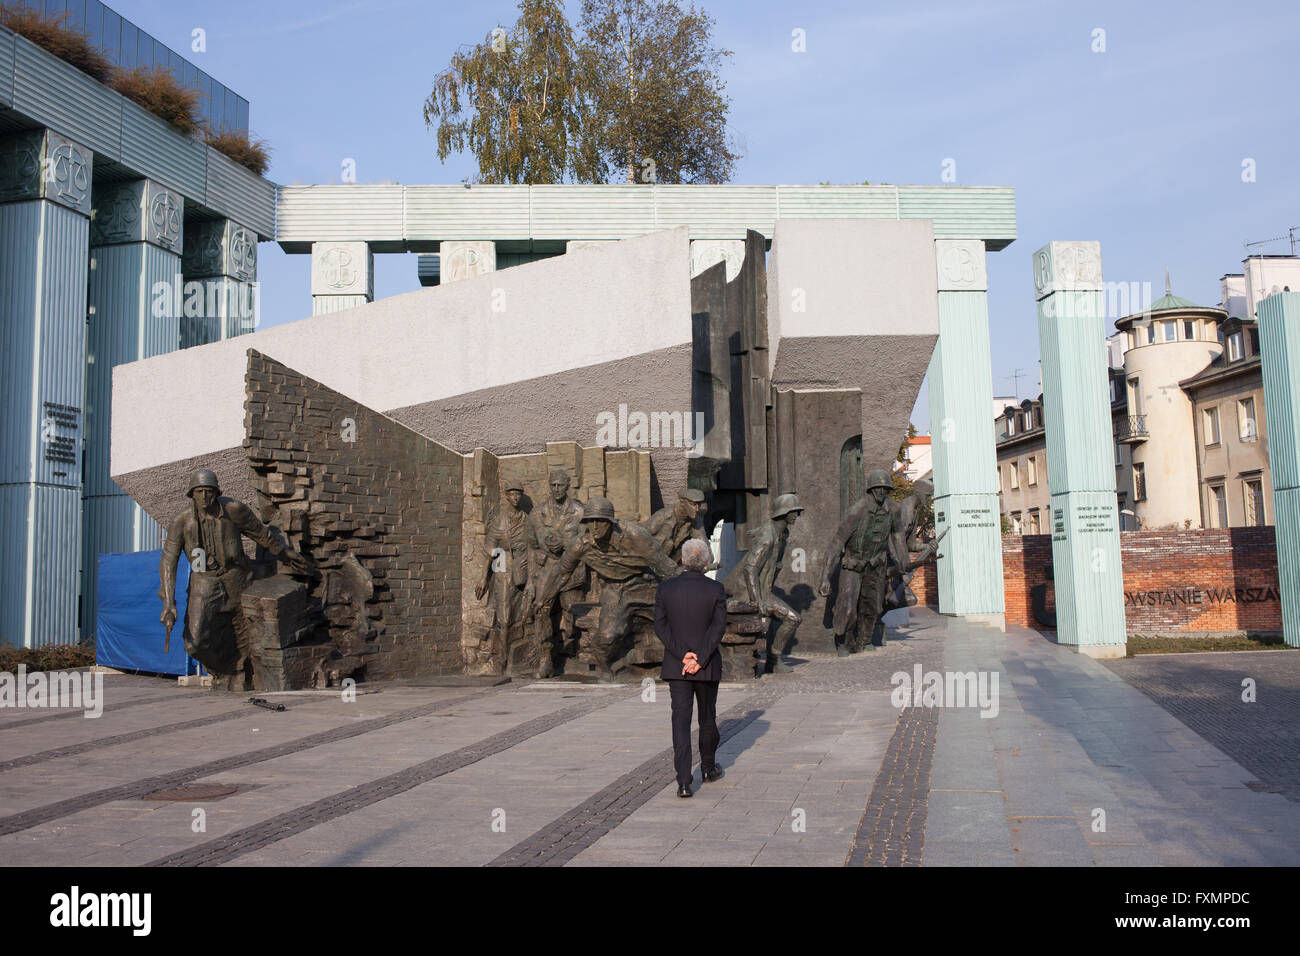 Warsaw Uprising Monument (Polish: Pomnik Powstania Warszawskiego) in Warsaw, Poland, dedicated to the Warsaw Uprising Stock Photo